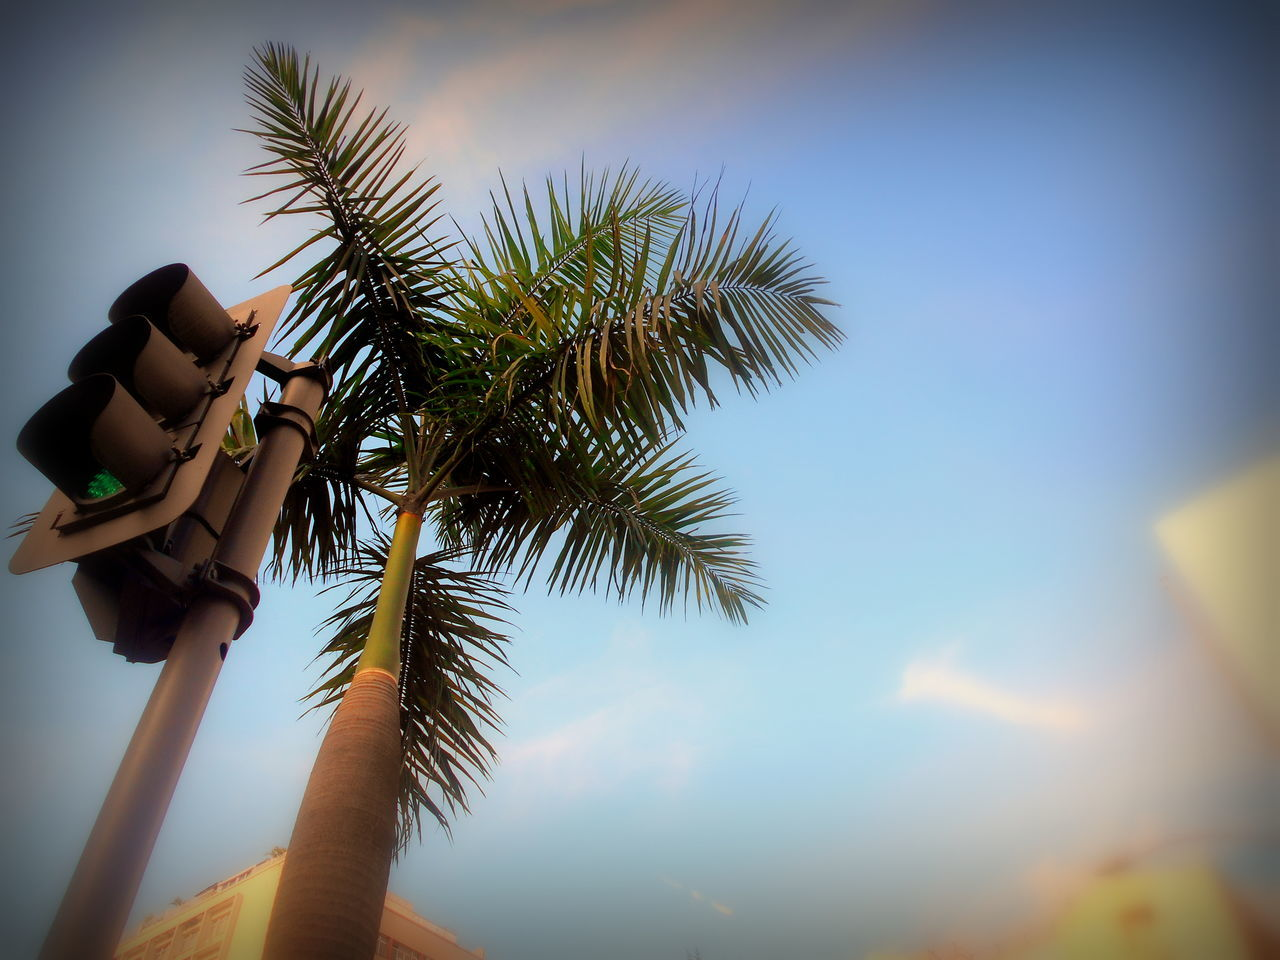 palm tree, tree, low angle view, day, outdoors, sky, real people, nature, beauty in nature, one person, close-up, people